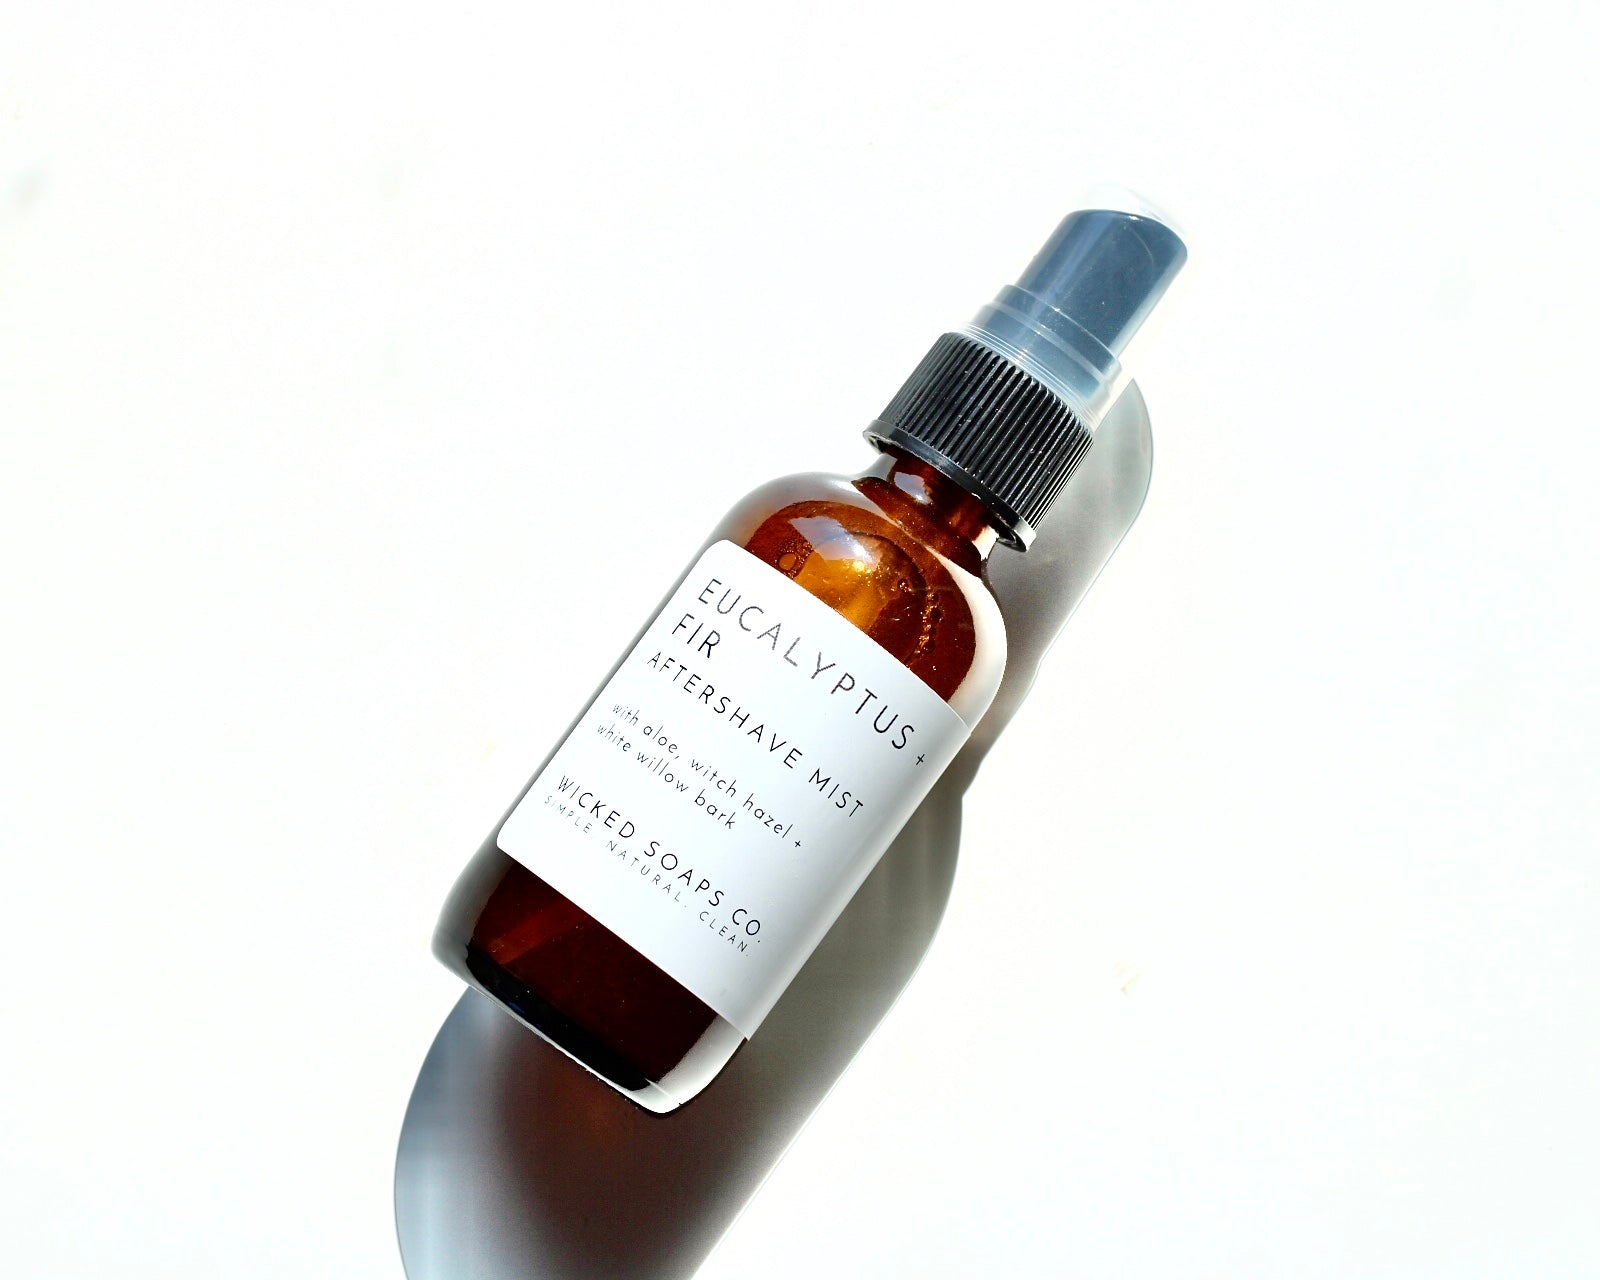 Eucalyptus + Fir Aftershave Mist